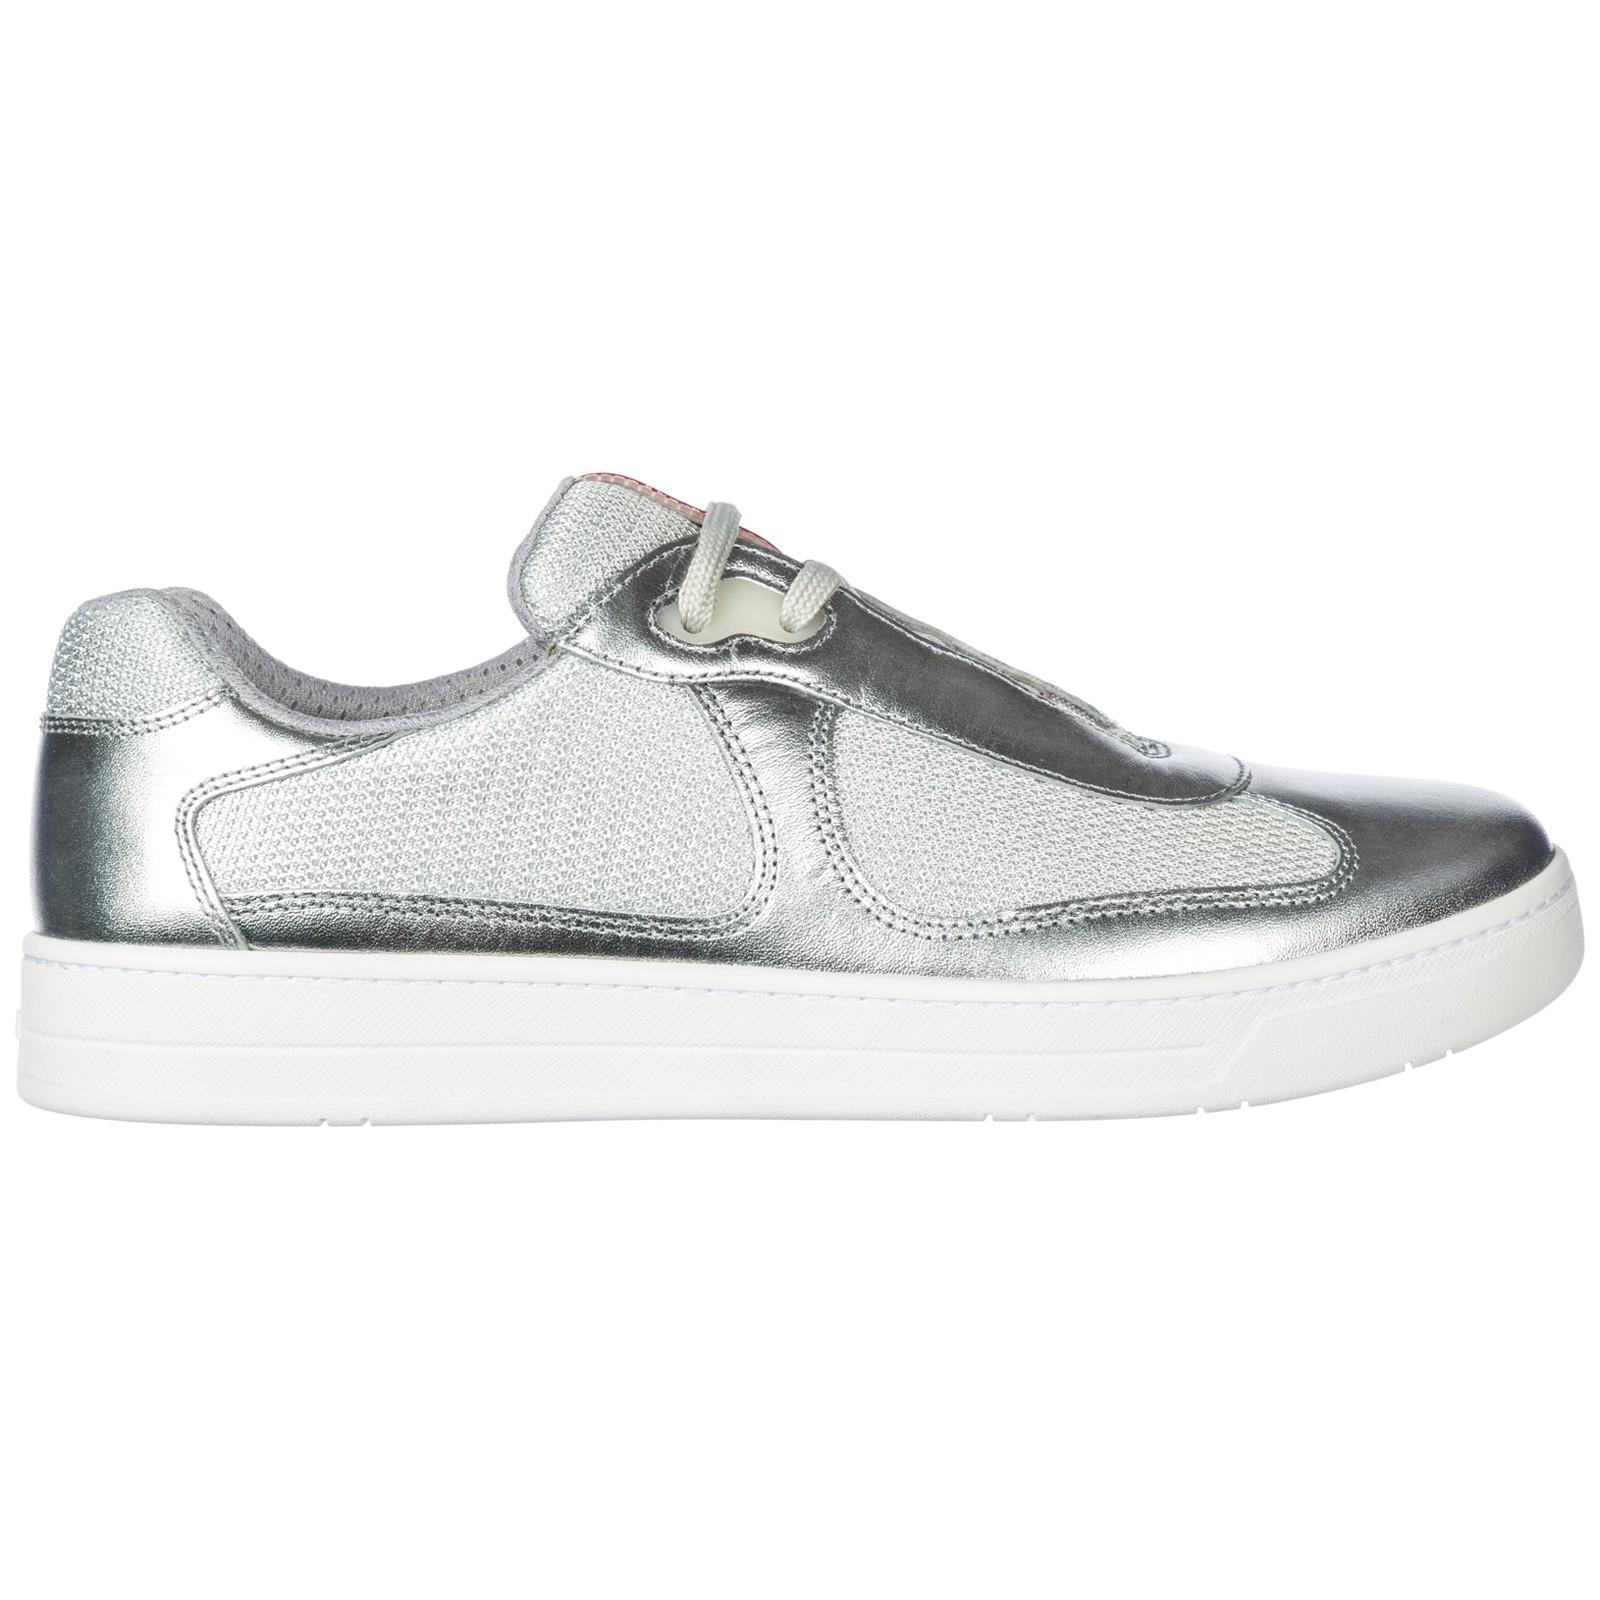 Men's Shoes Leather Trainers Sneakers America S Cup In Silver